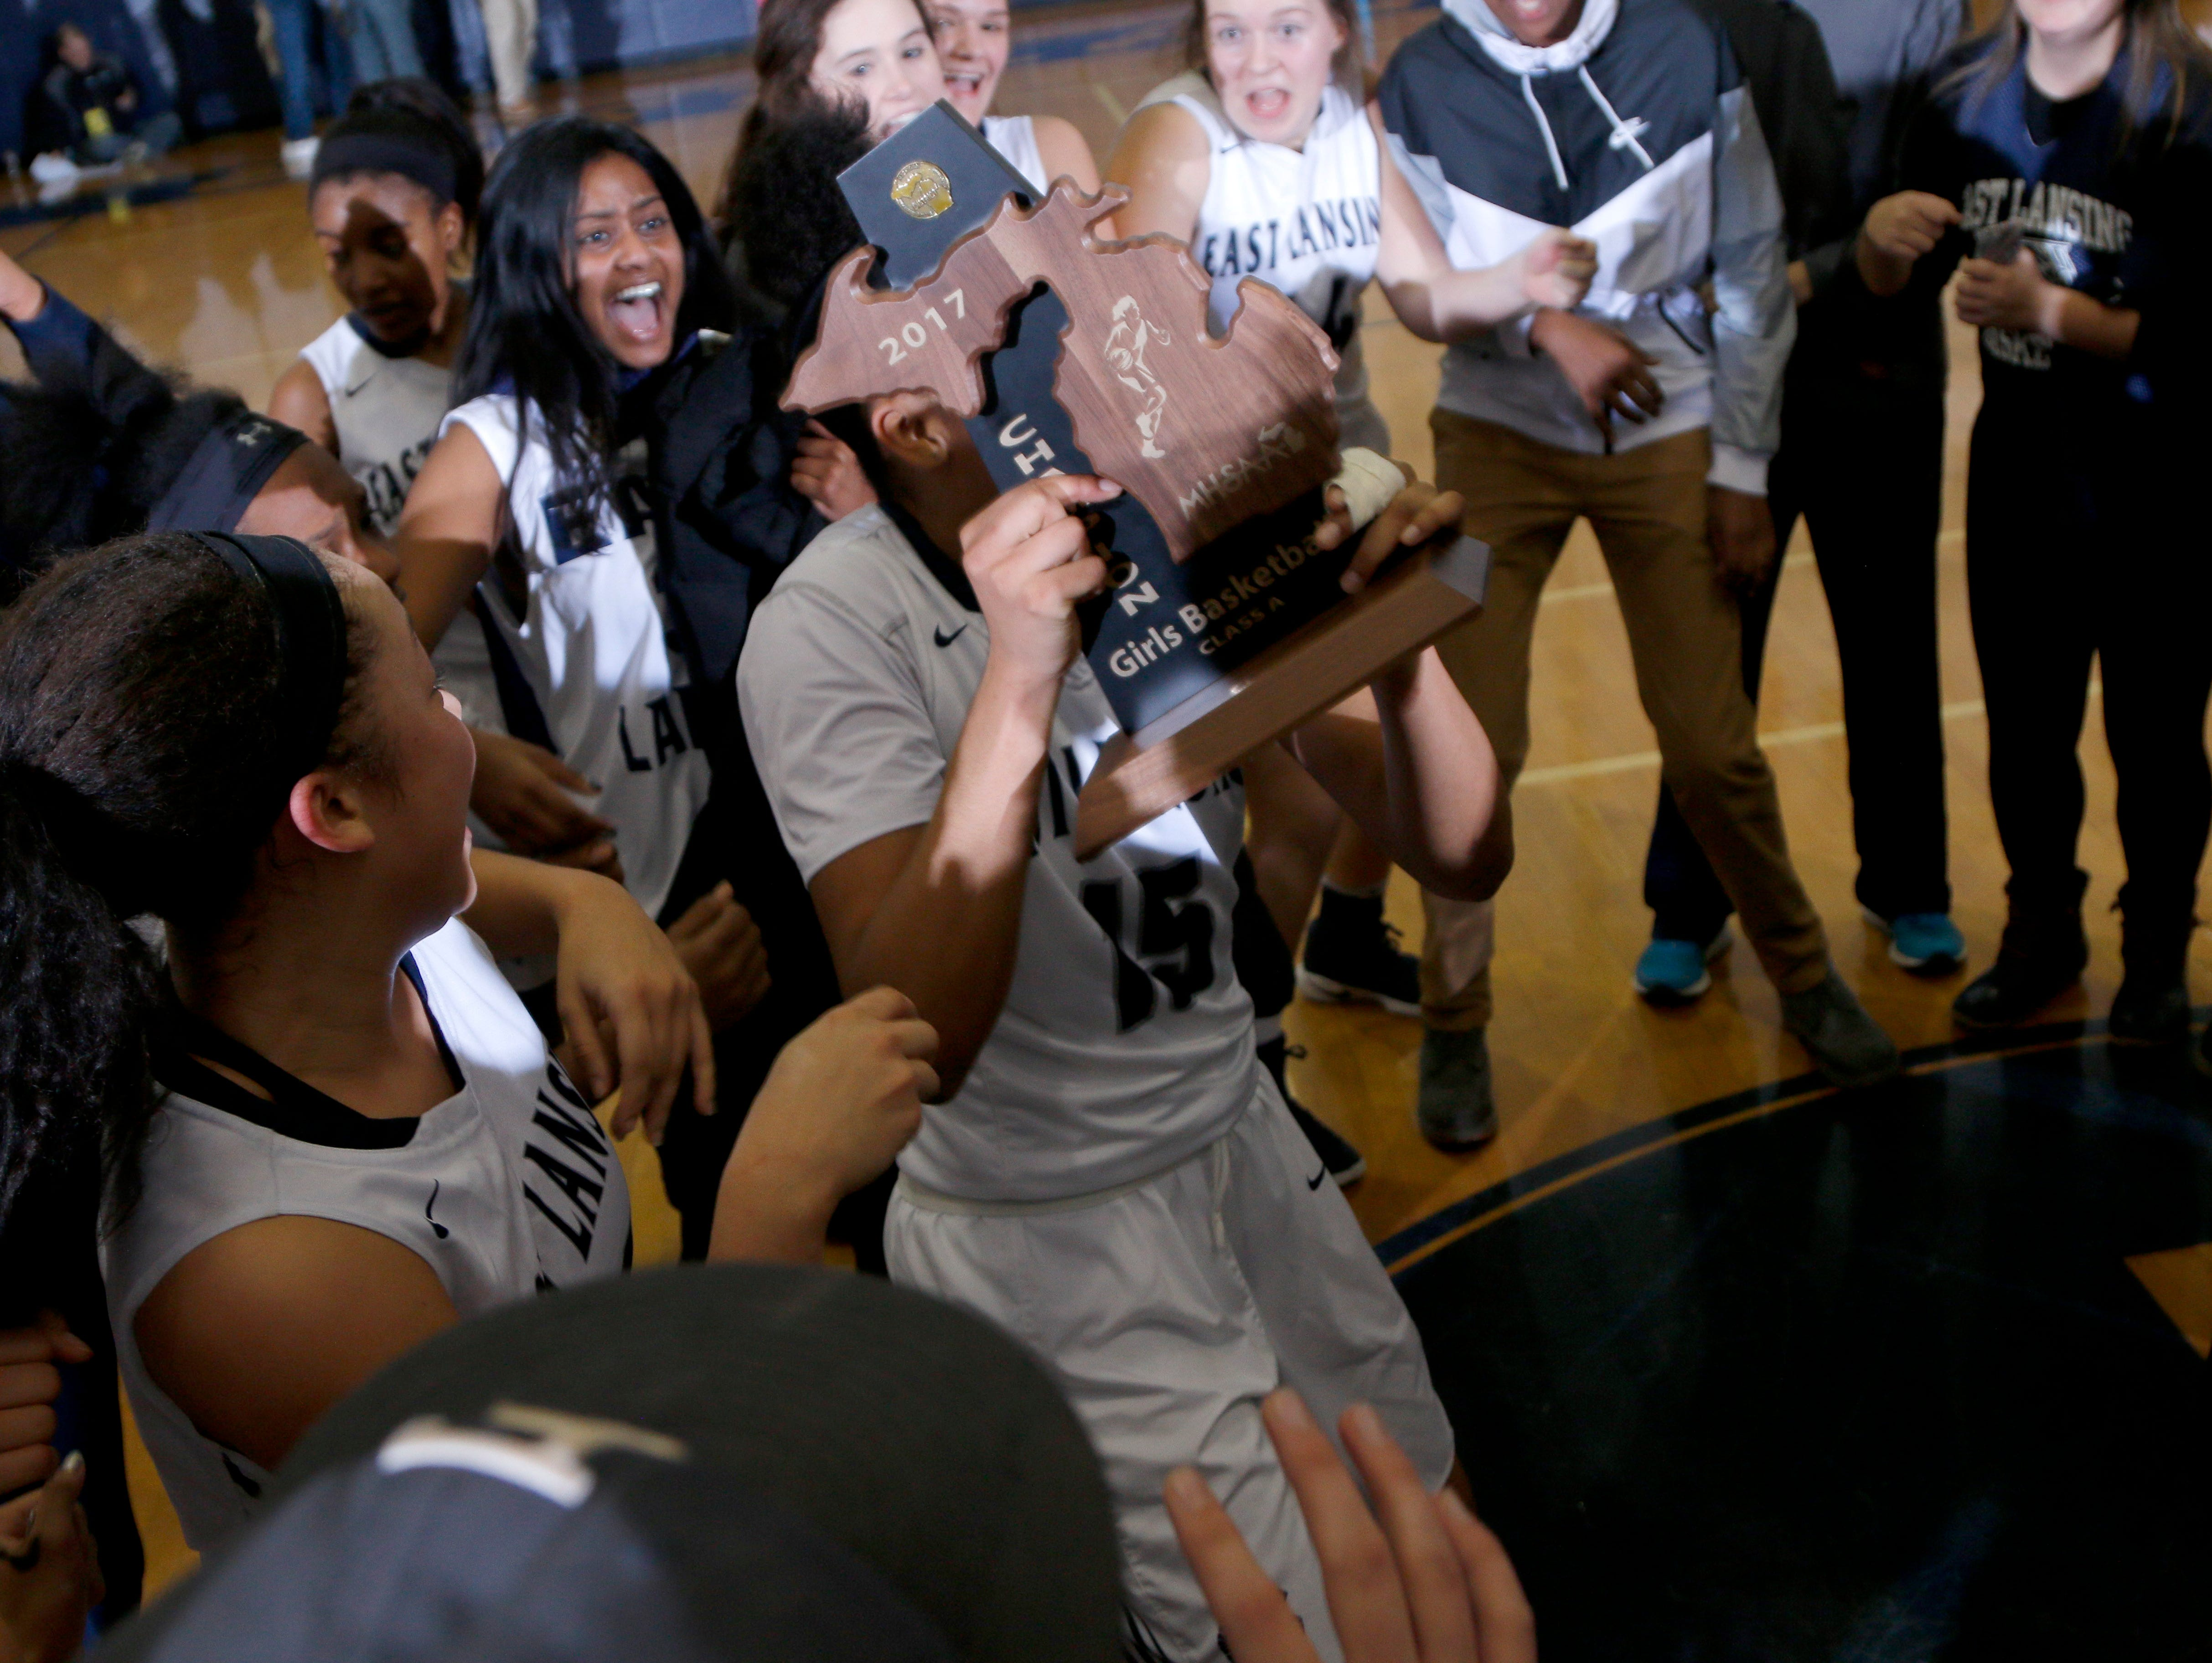 Players and fans celebrate East Lansing district final win over DeWitt Friday, March 3, 2017, in East Lansing, Mich. East Lansing won 48-47.